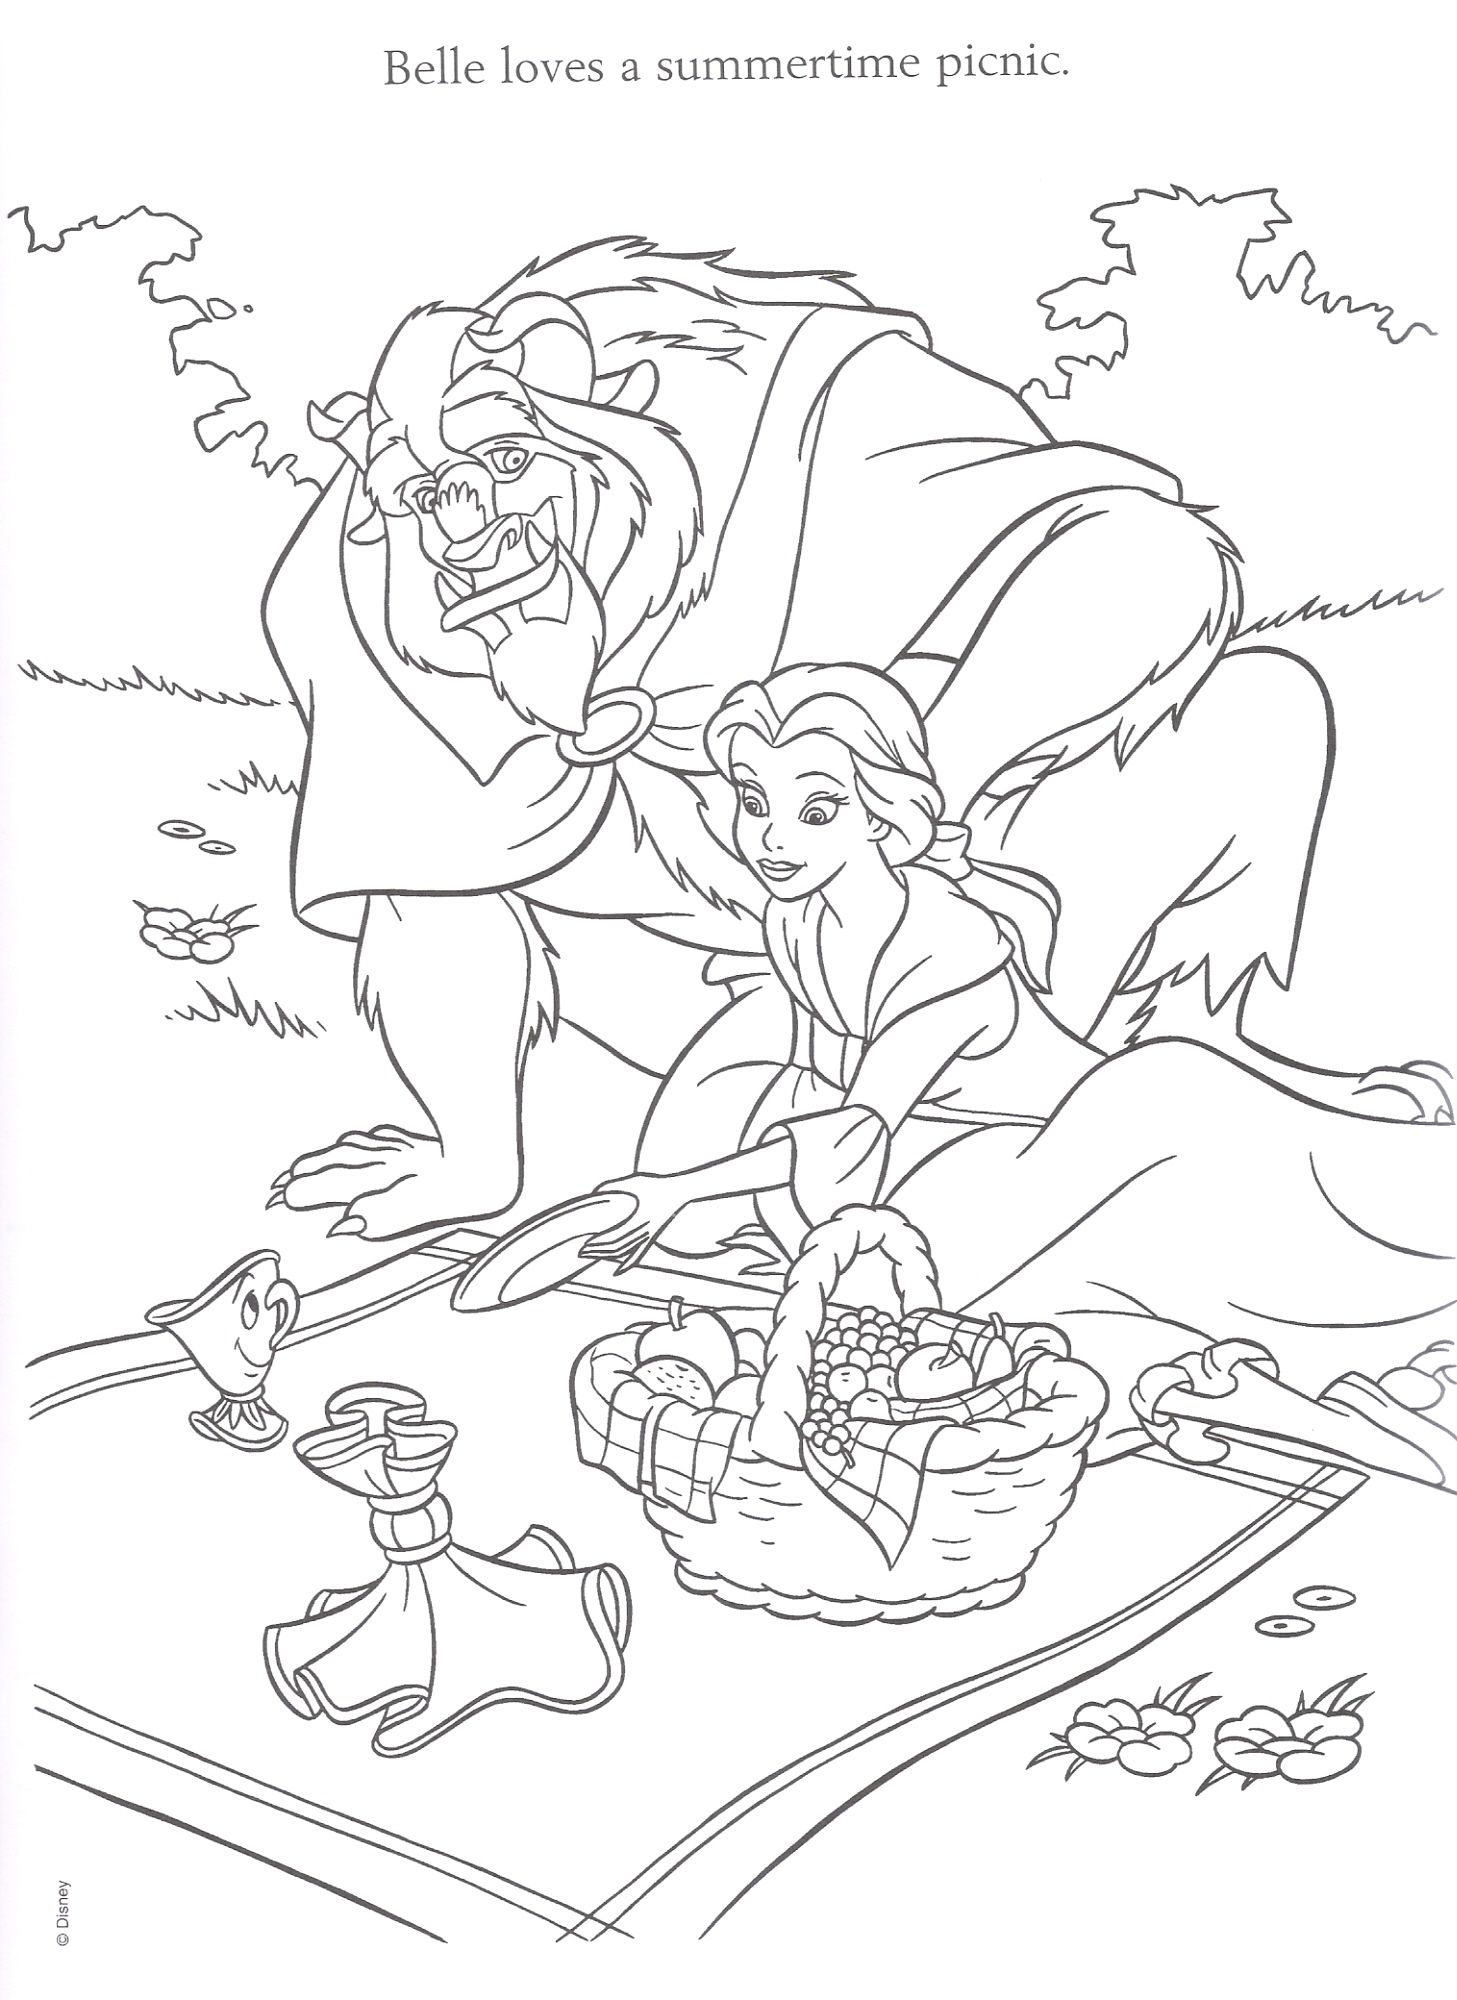 Beauty & The Beast Coloring Page from